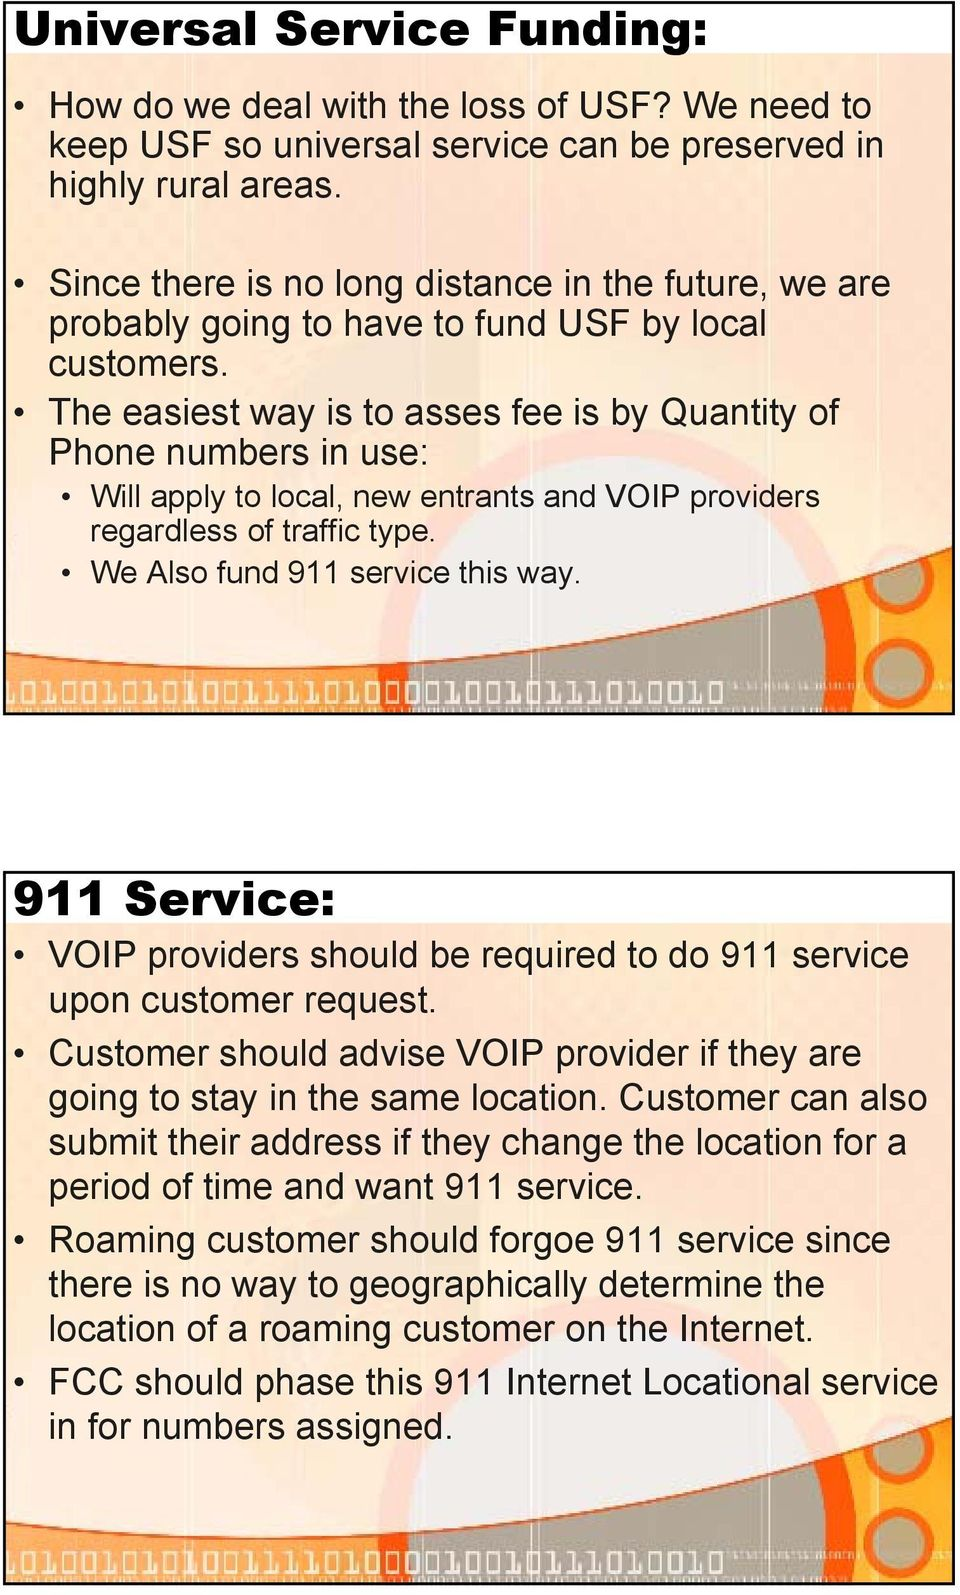 The easiest way is to asses fee is by Quantity of Phone numbers in use: Will apply to local, new entrants and VOIP providers regardless of traffic type. We Also fund 911 service this way.